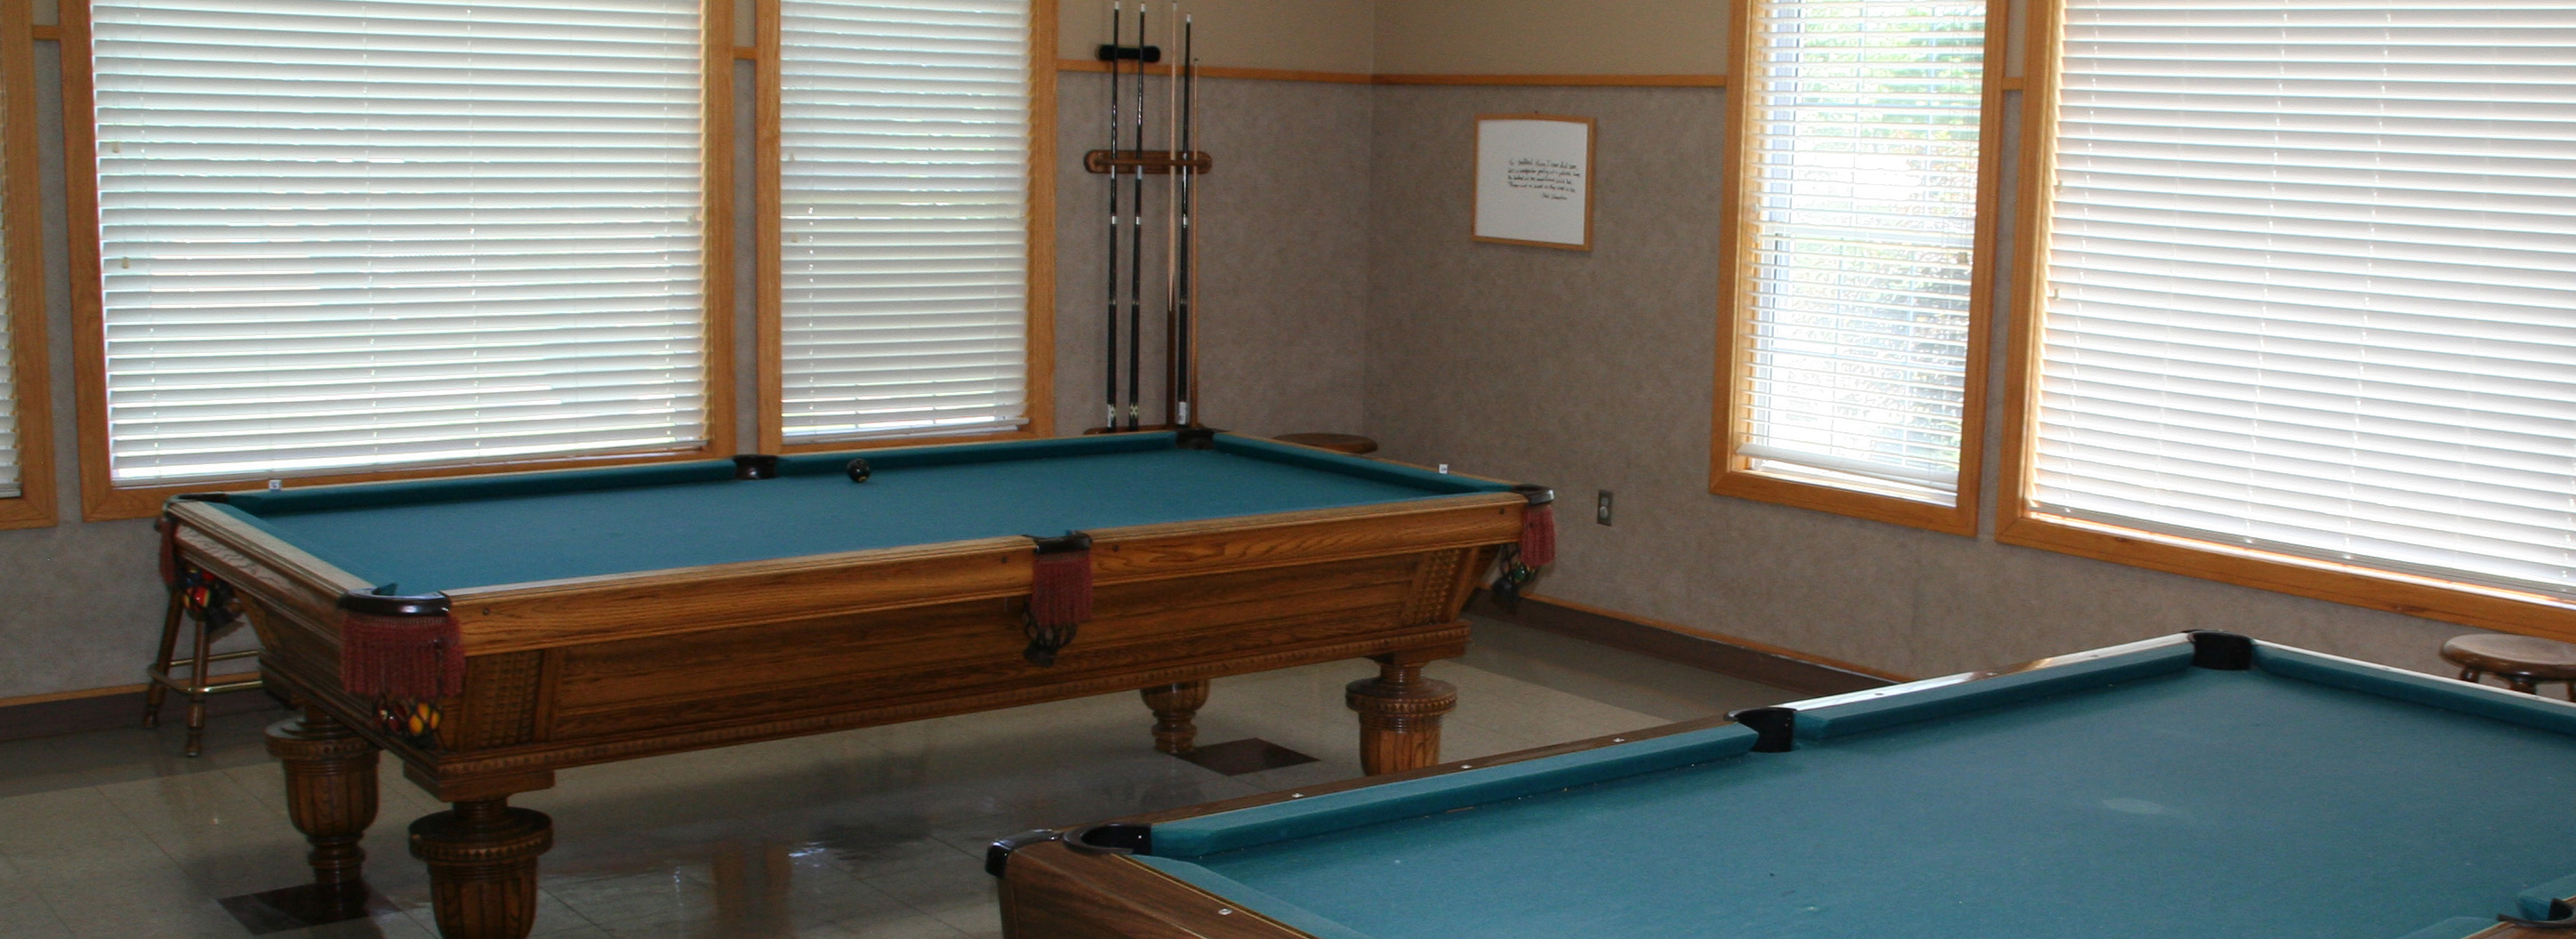 pictures of a couple of pool table at the Pioneer Center